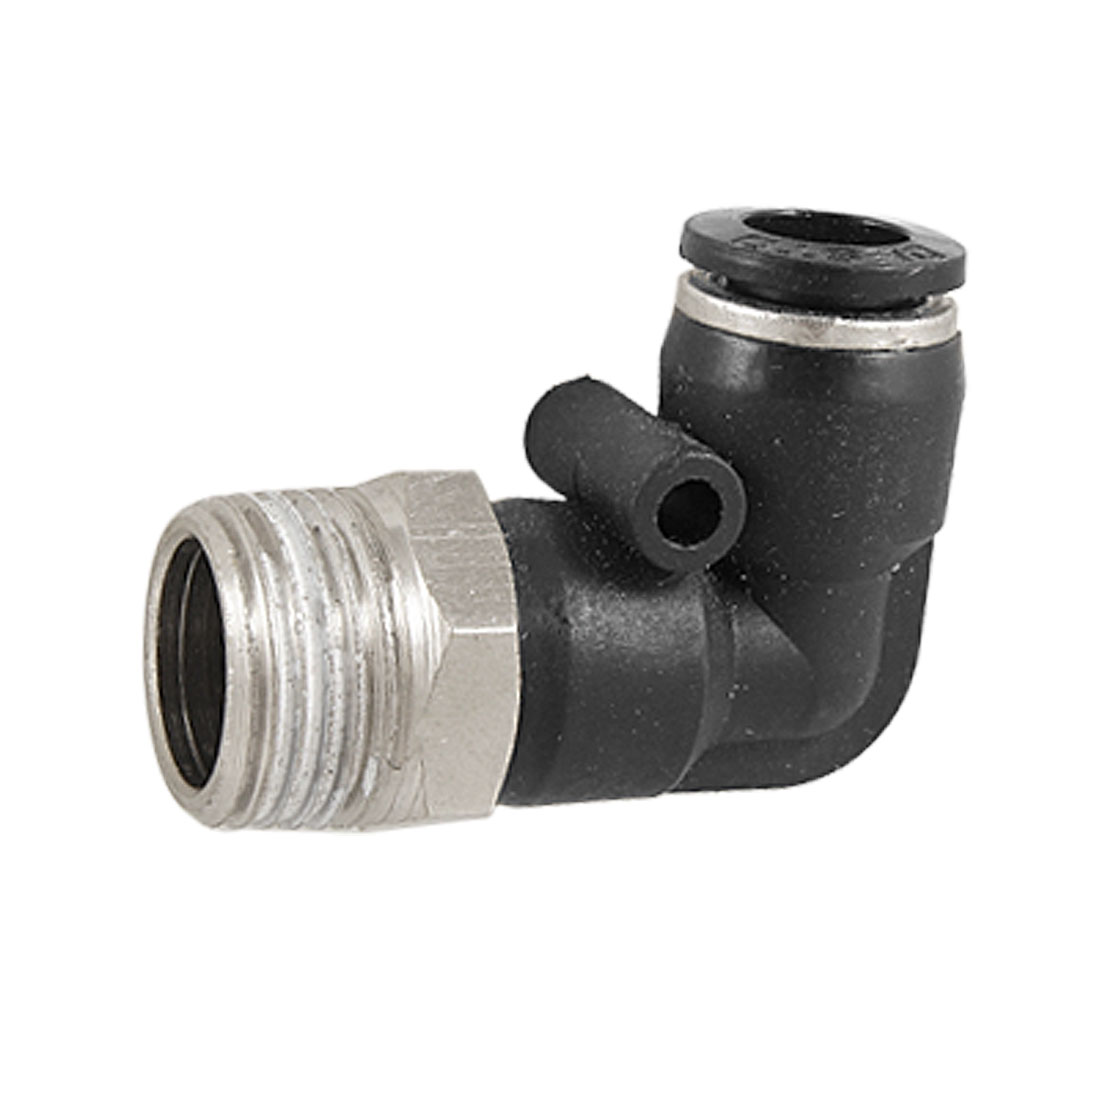 Male Thread to 8mm Elbow One Touch Fitting Quick Connector